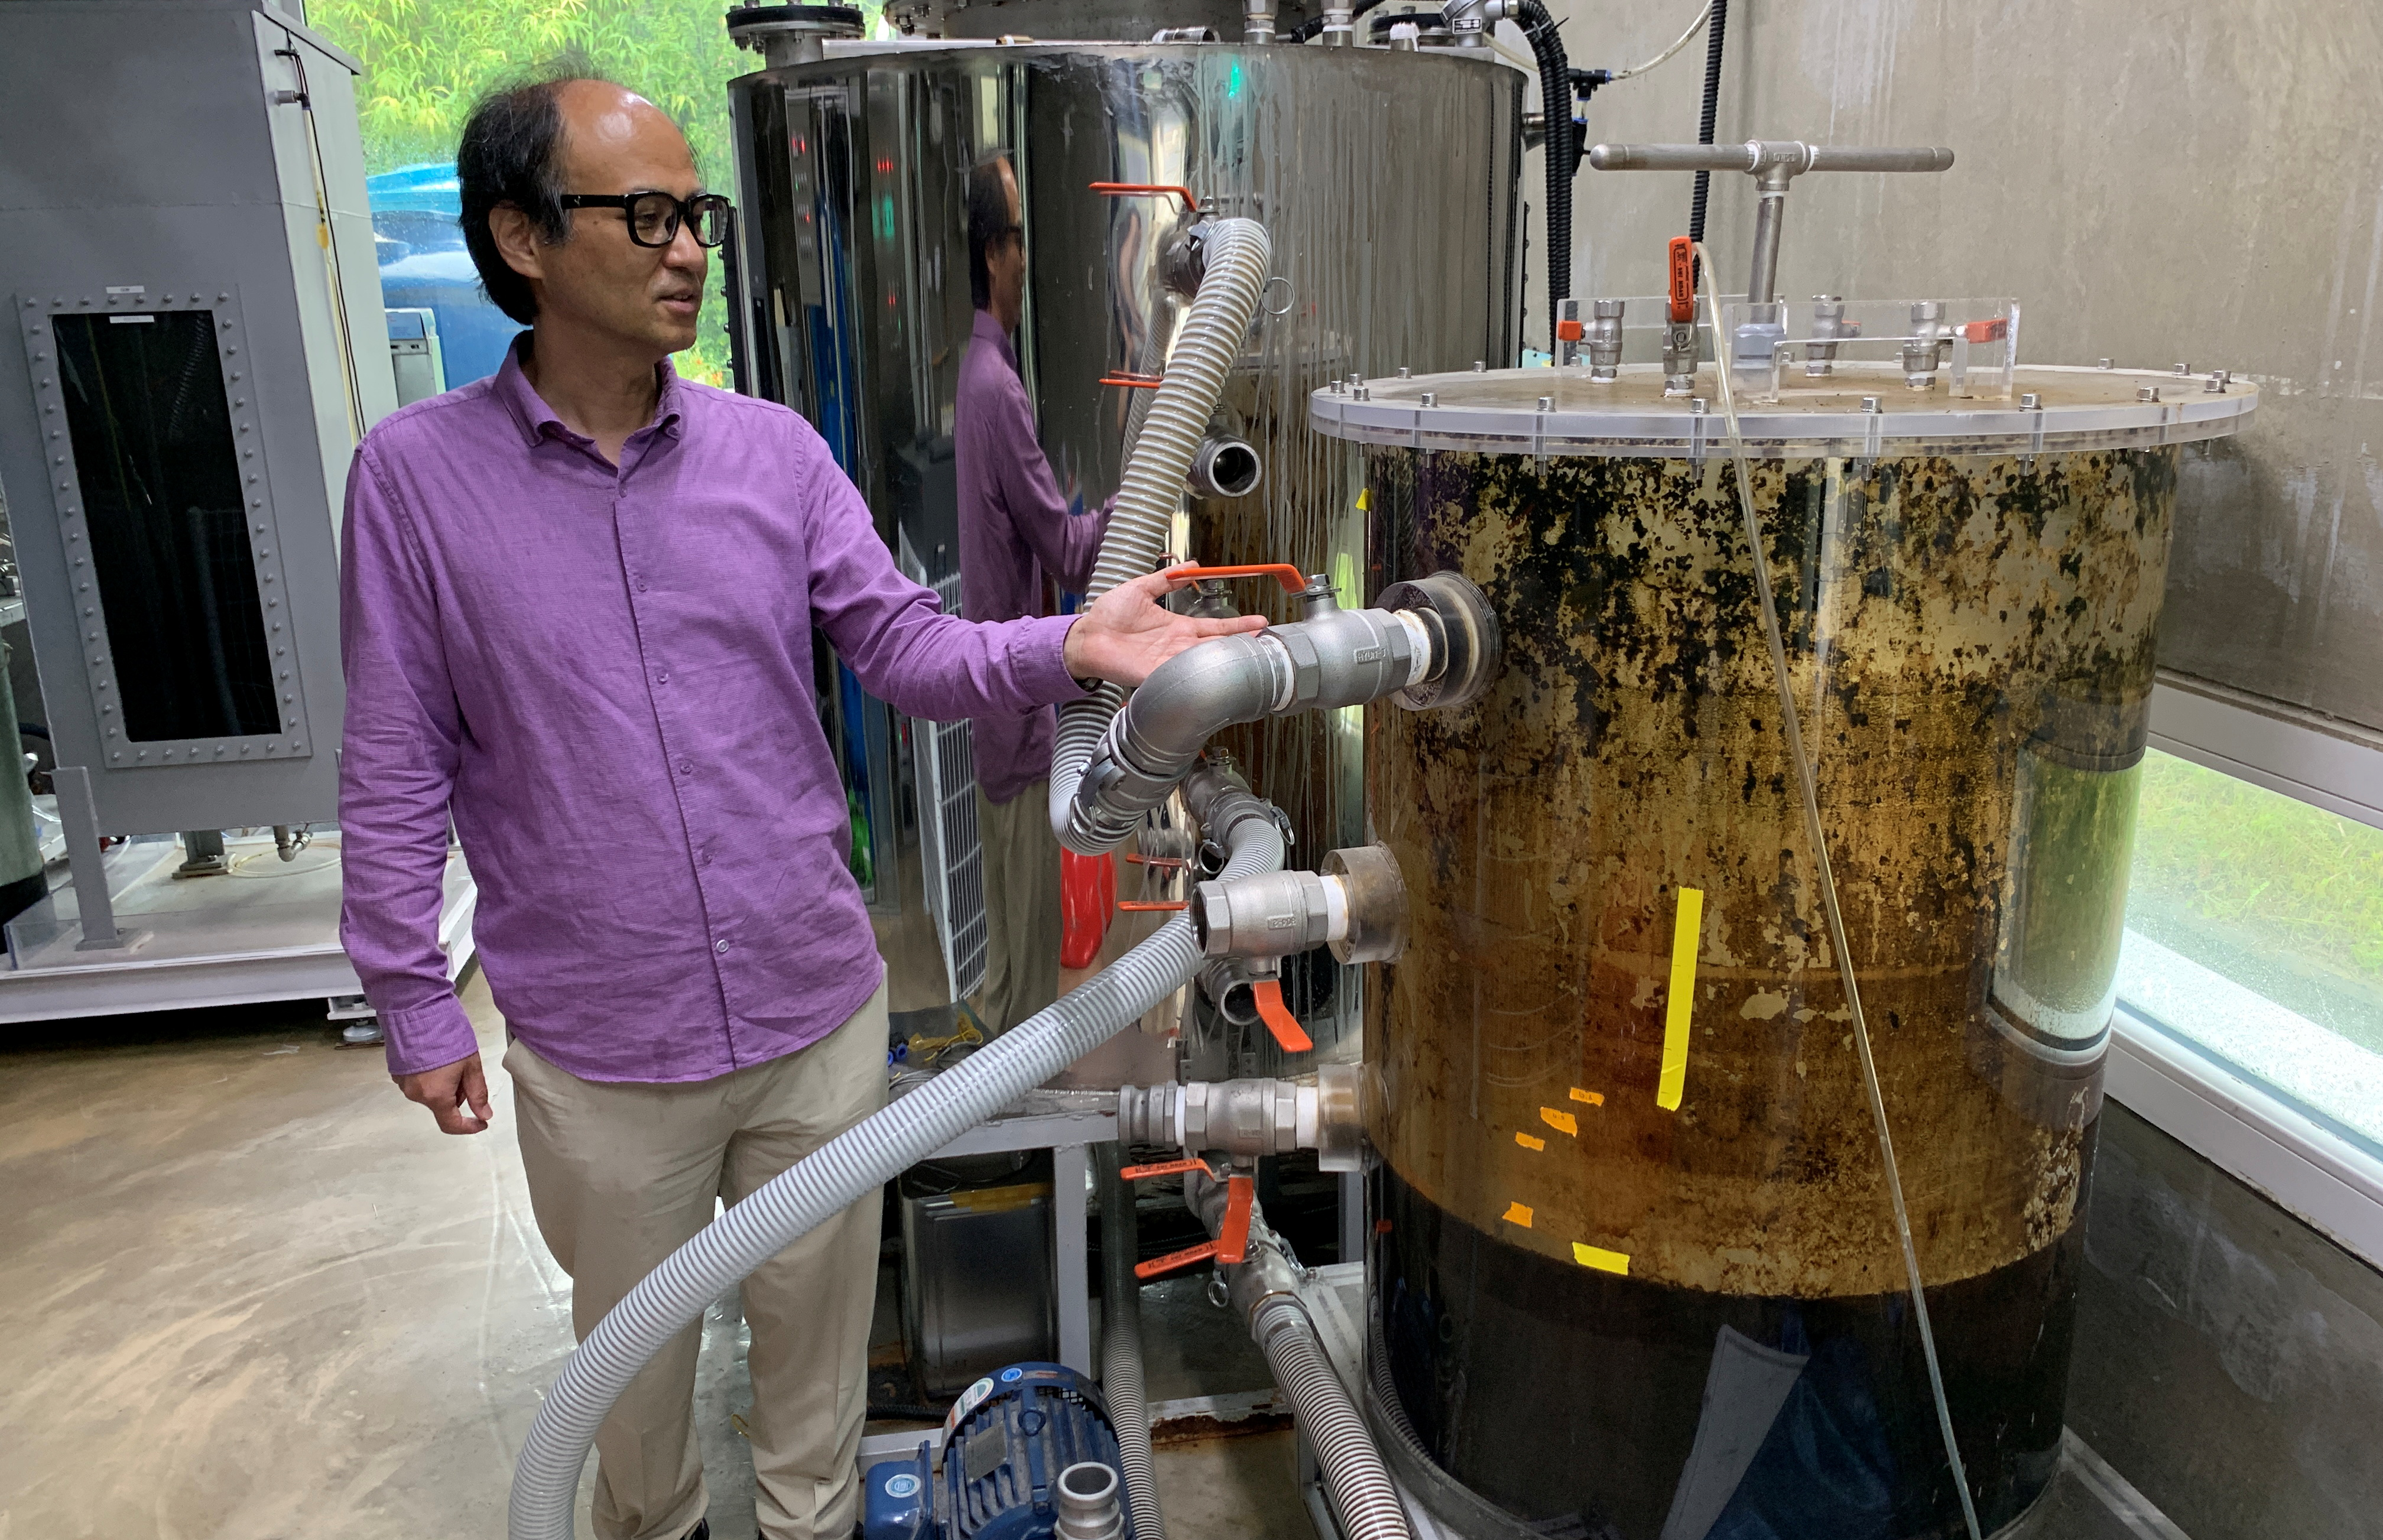 Cho Jae-weon, a South Korean professor at Ulsan National Institute of Science and Technology (UNIST), stands next to a faeces tank at a laboratory in Ulsan, South Korea, July 6, 2021. Picture taken on July 6, 2021. REUTERS/Minwoo Park